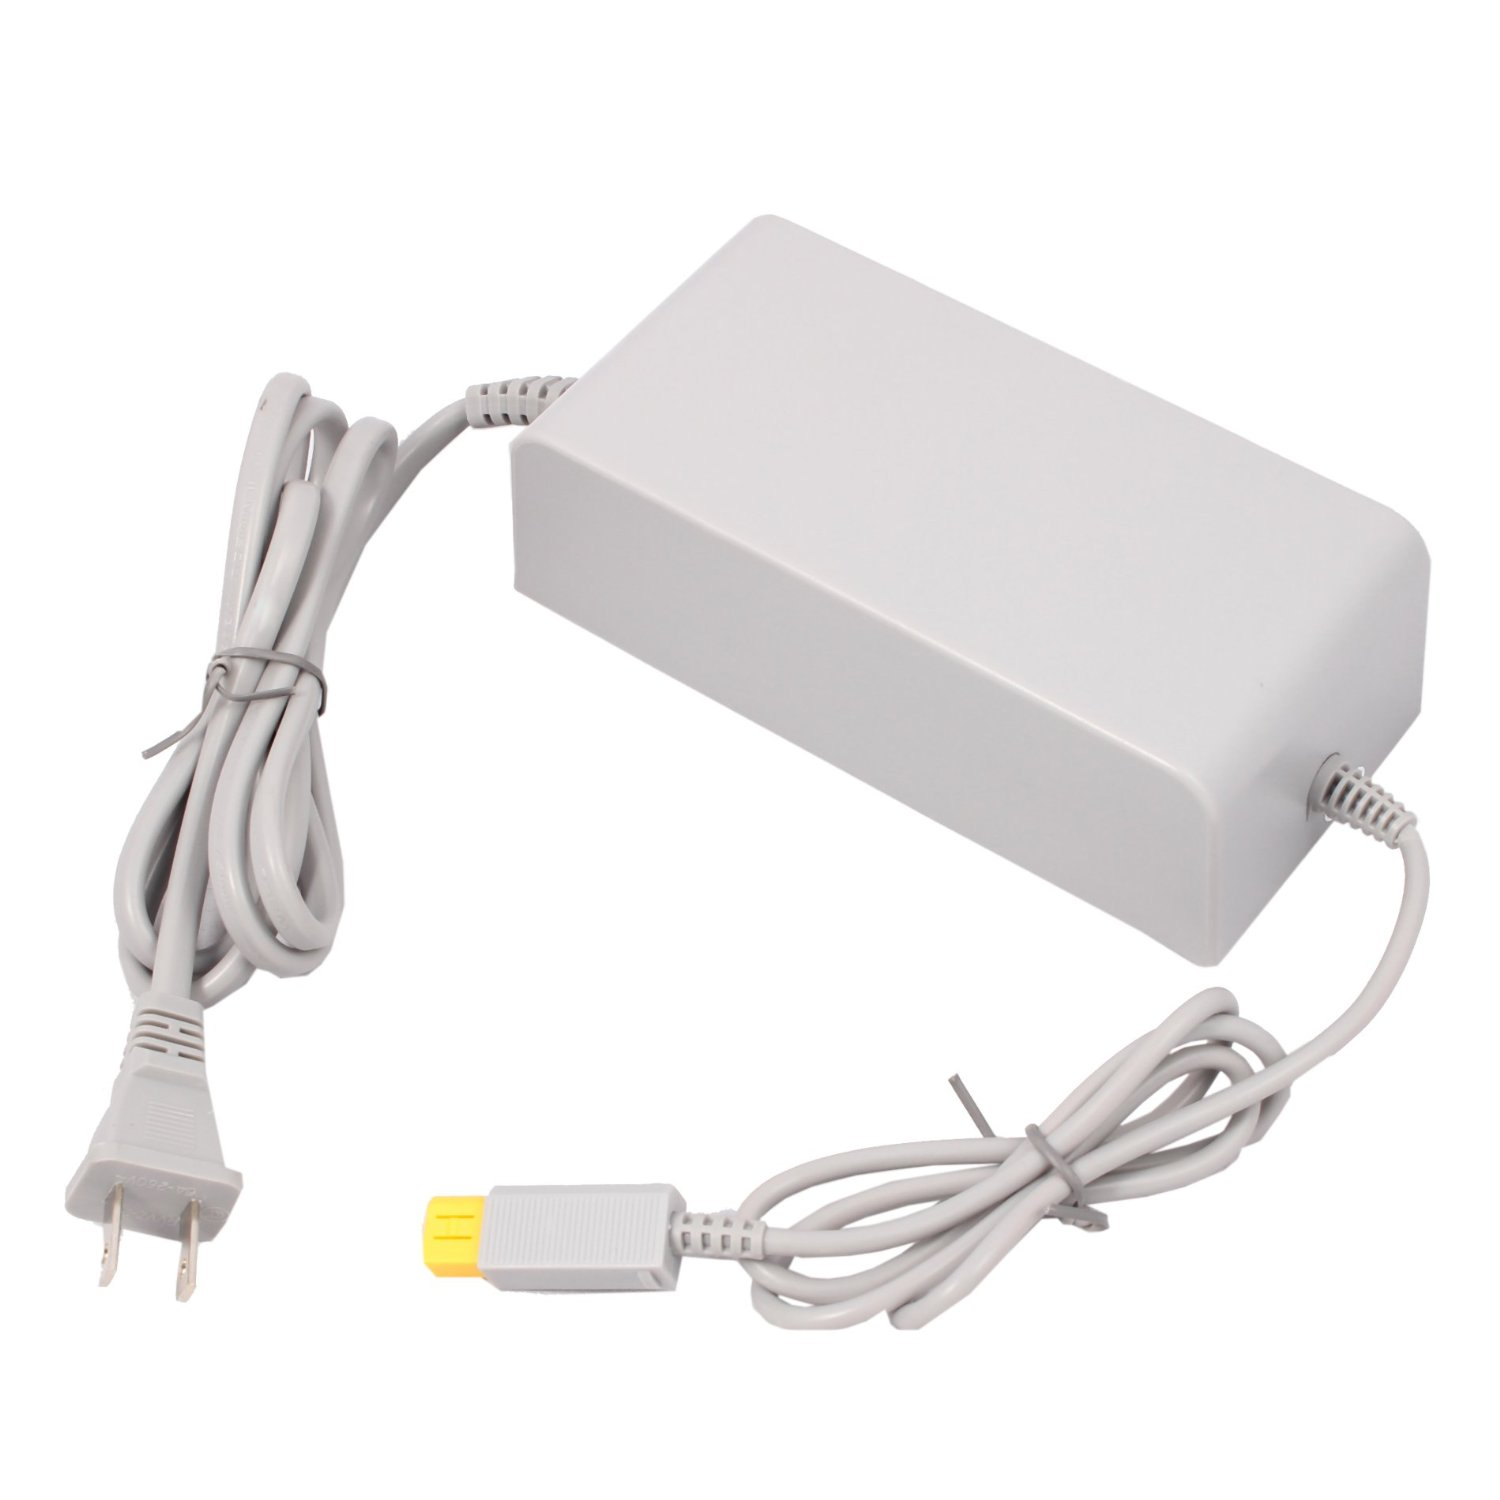 Power Supply Universal 100 - 240V AC Adapter for Wii U Console US Plug